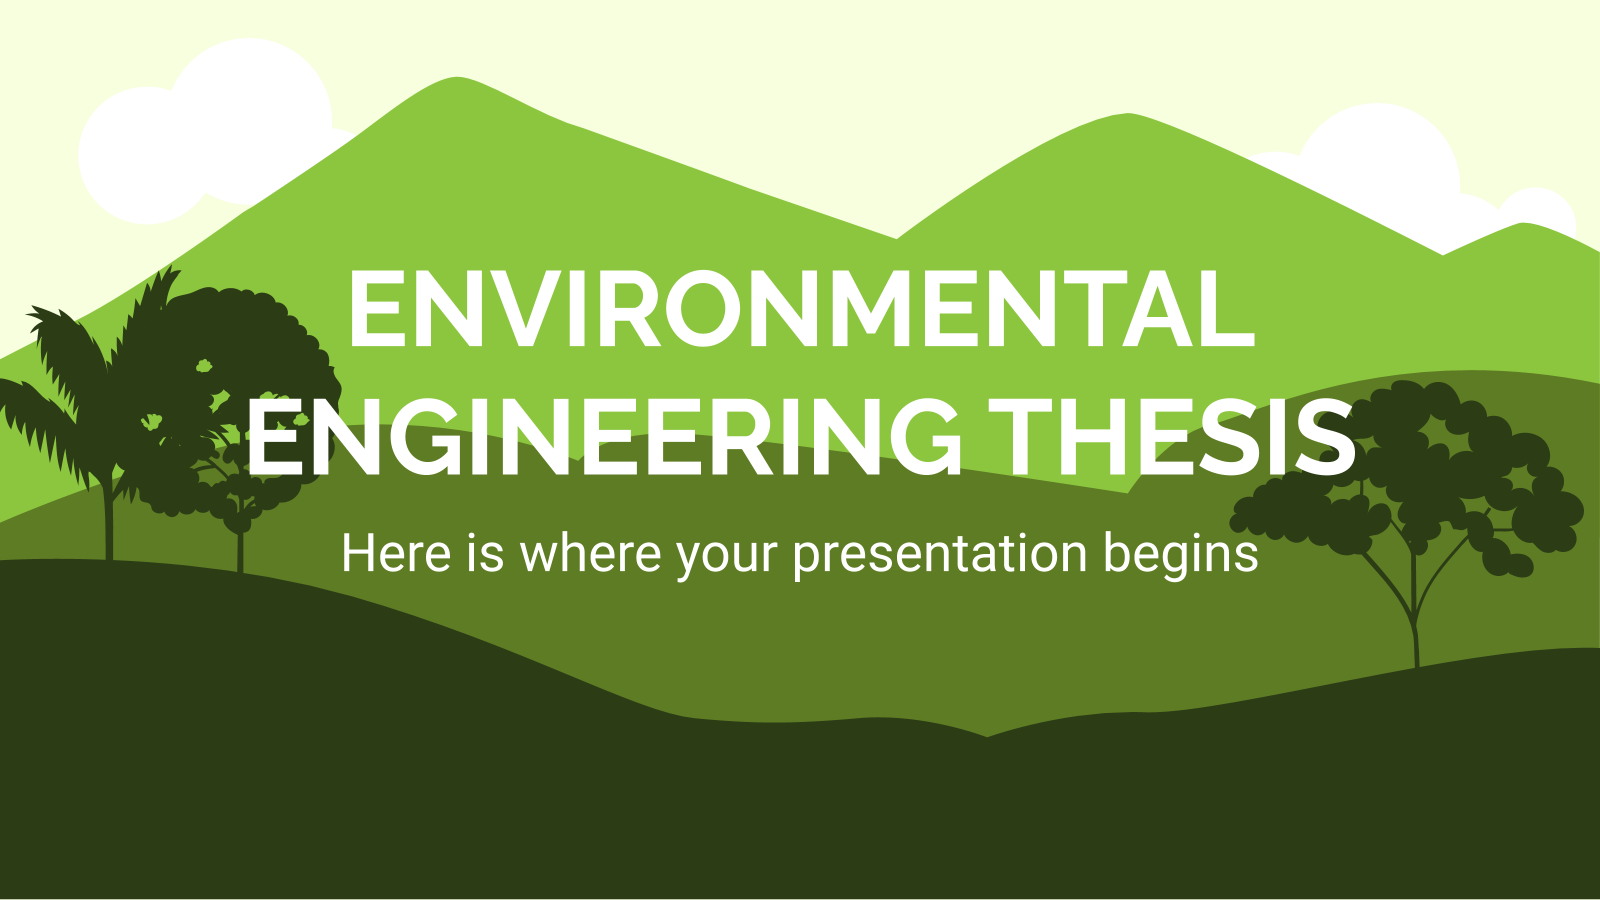 Environmental Engineering Thesis presentation template